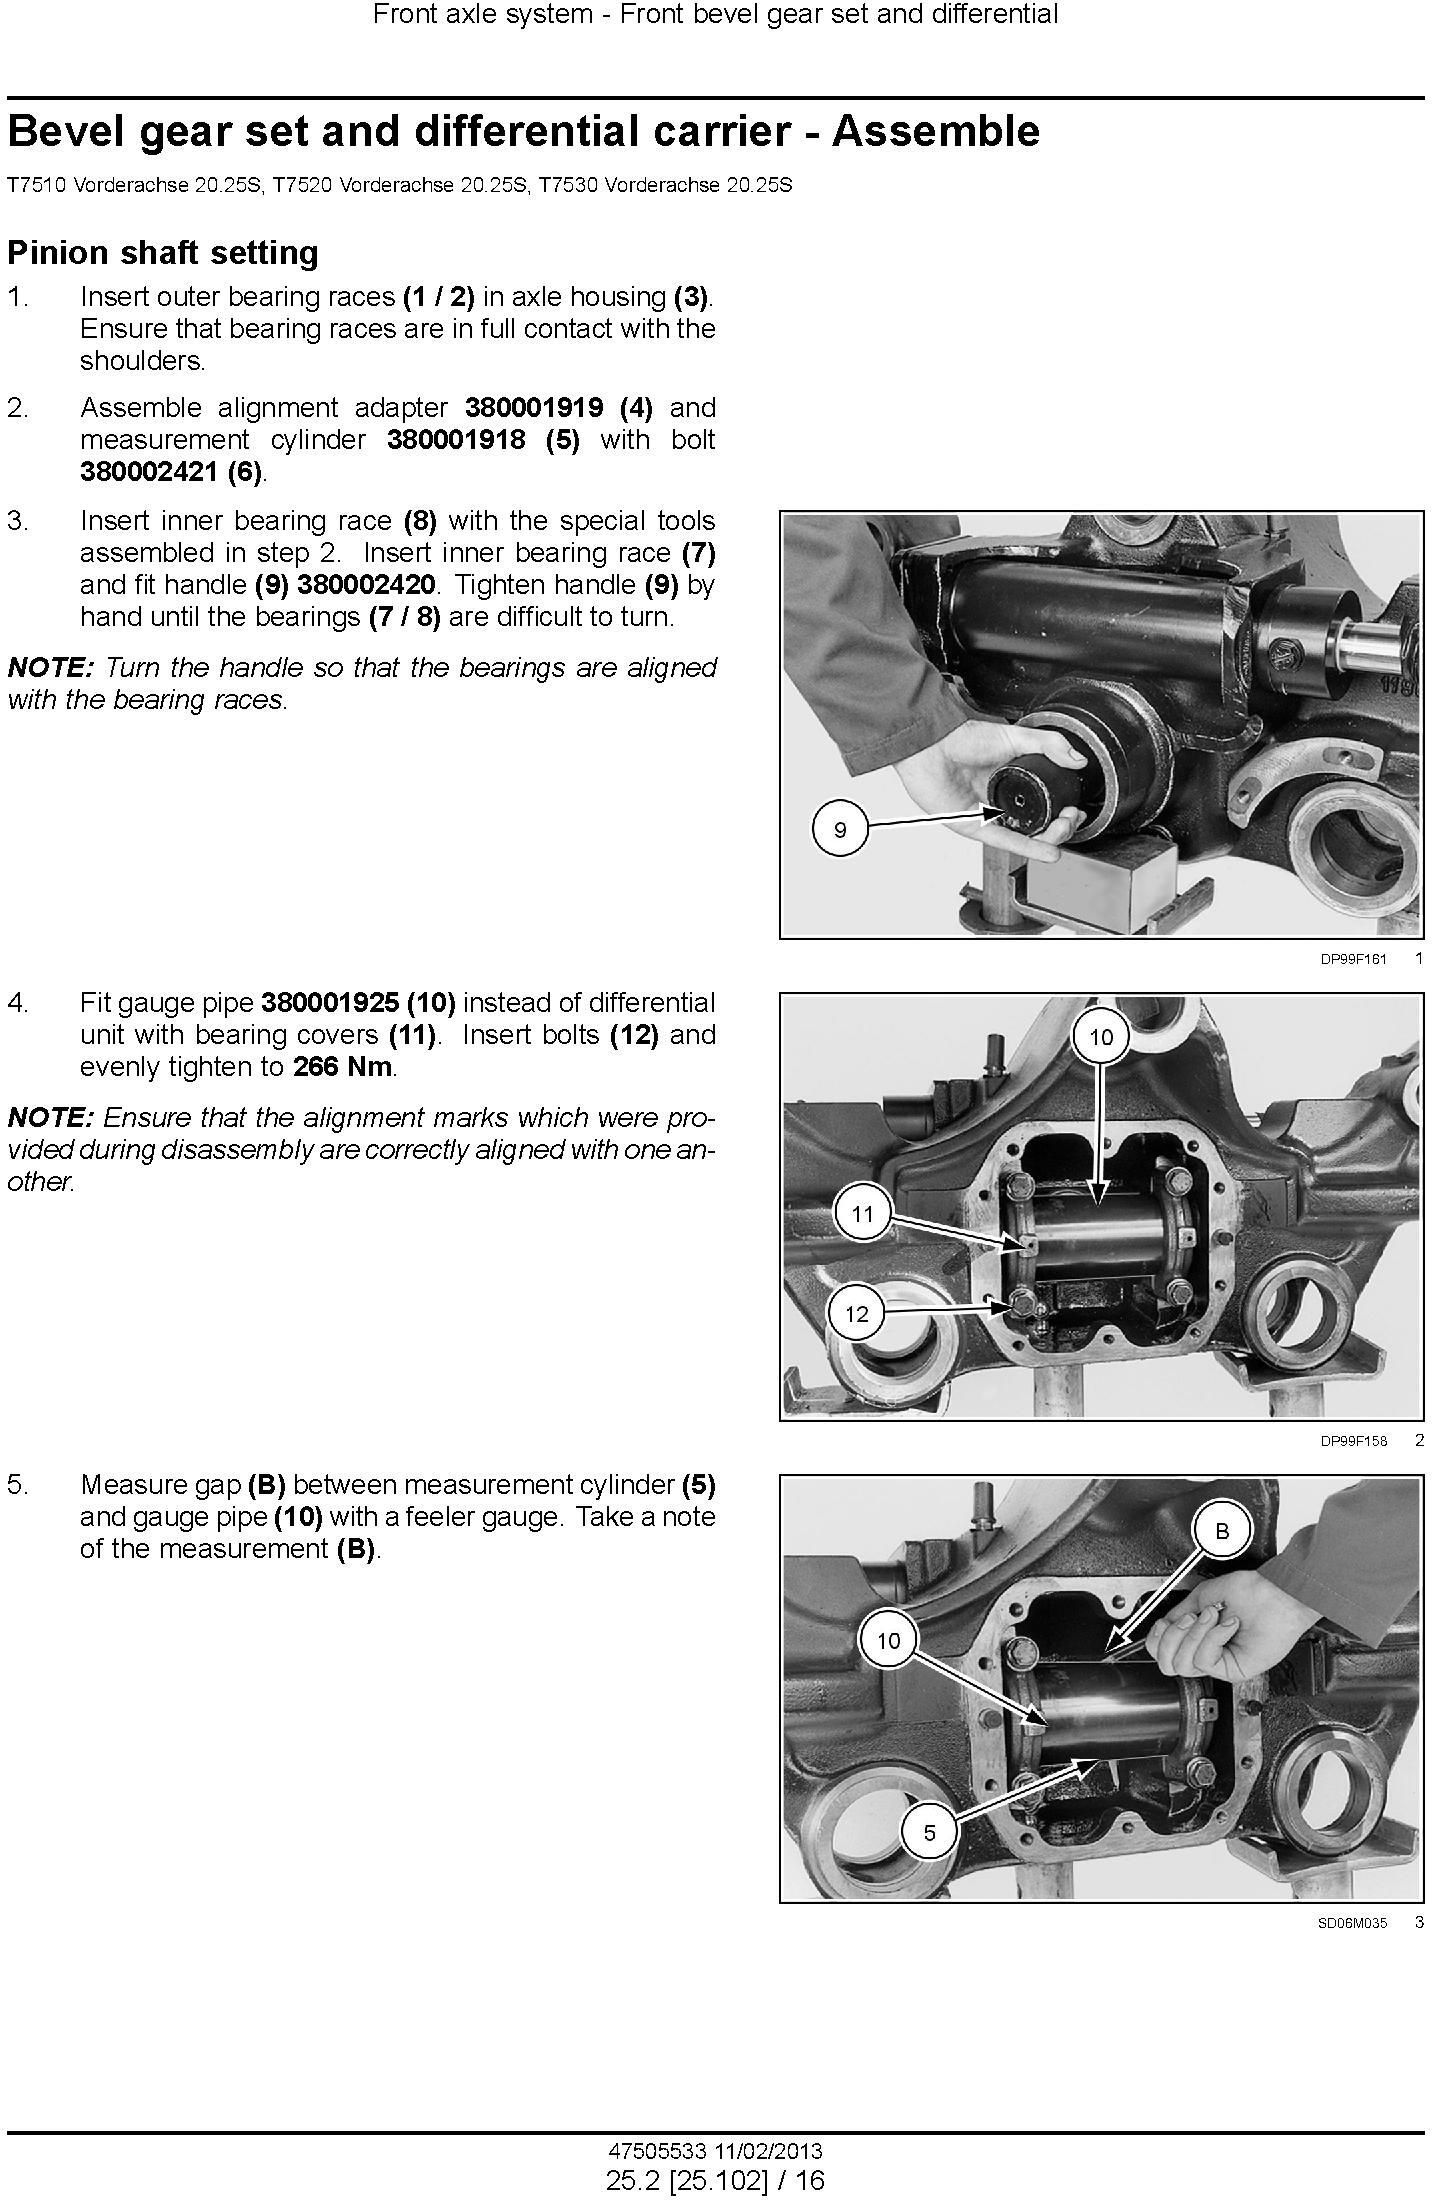 New Holland T7510, T7520, T7530, T7540, T7550 Tractor Service Manual - 2